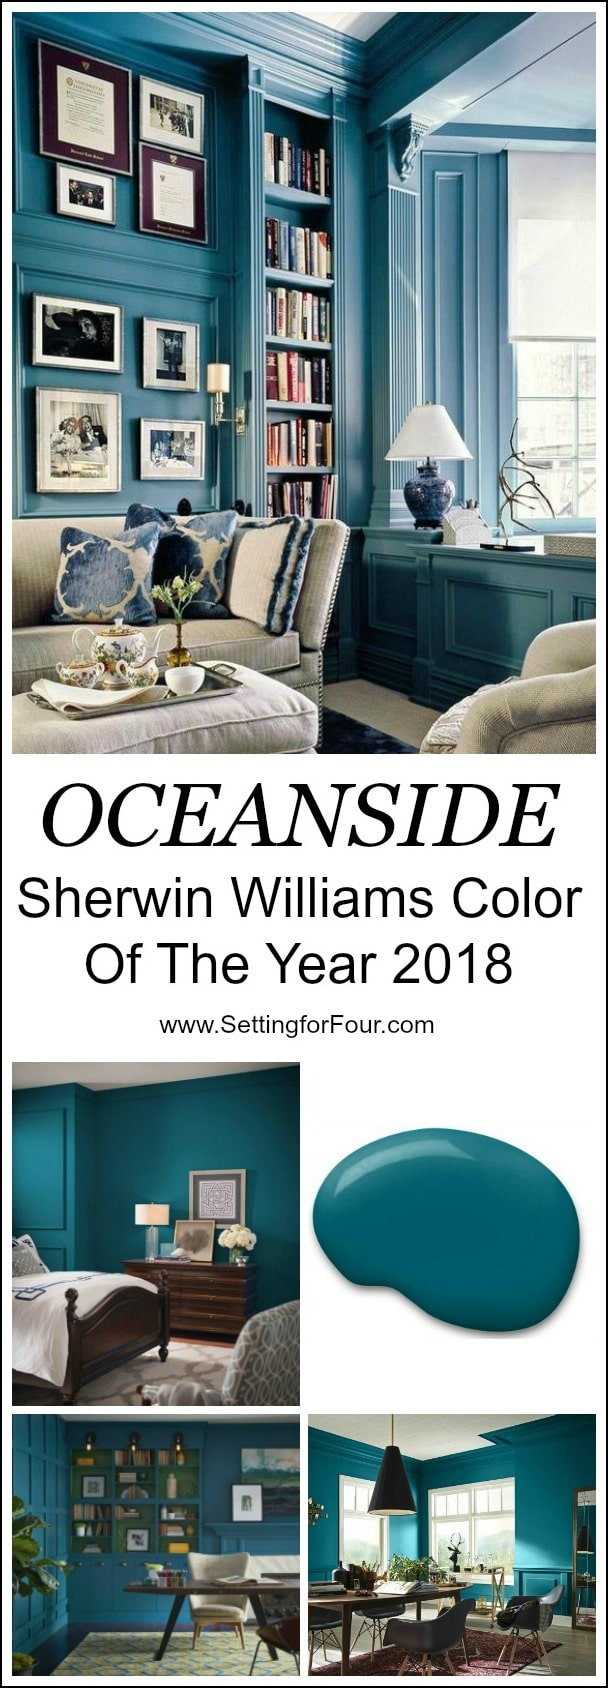 For your home: Looking for a paint color to paint your next room? See why I love Oceanside 6496, a beautiful blue color- Sherwin Williams Color Of The Year 2018 and see how it looks in real rooms!